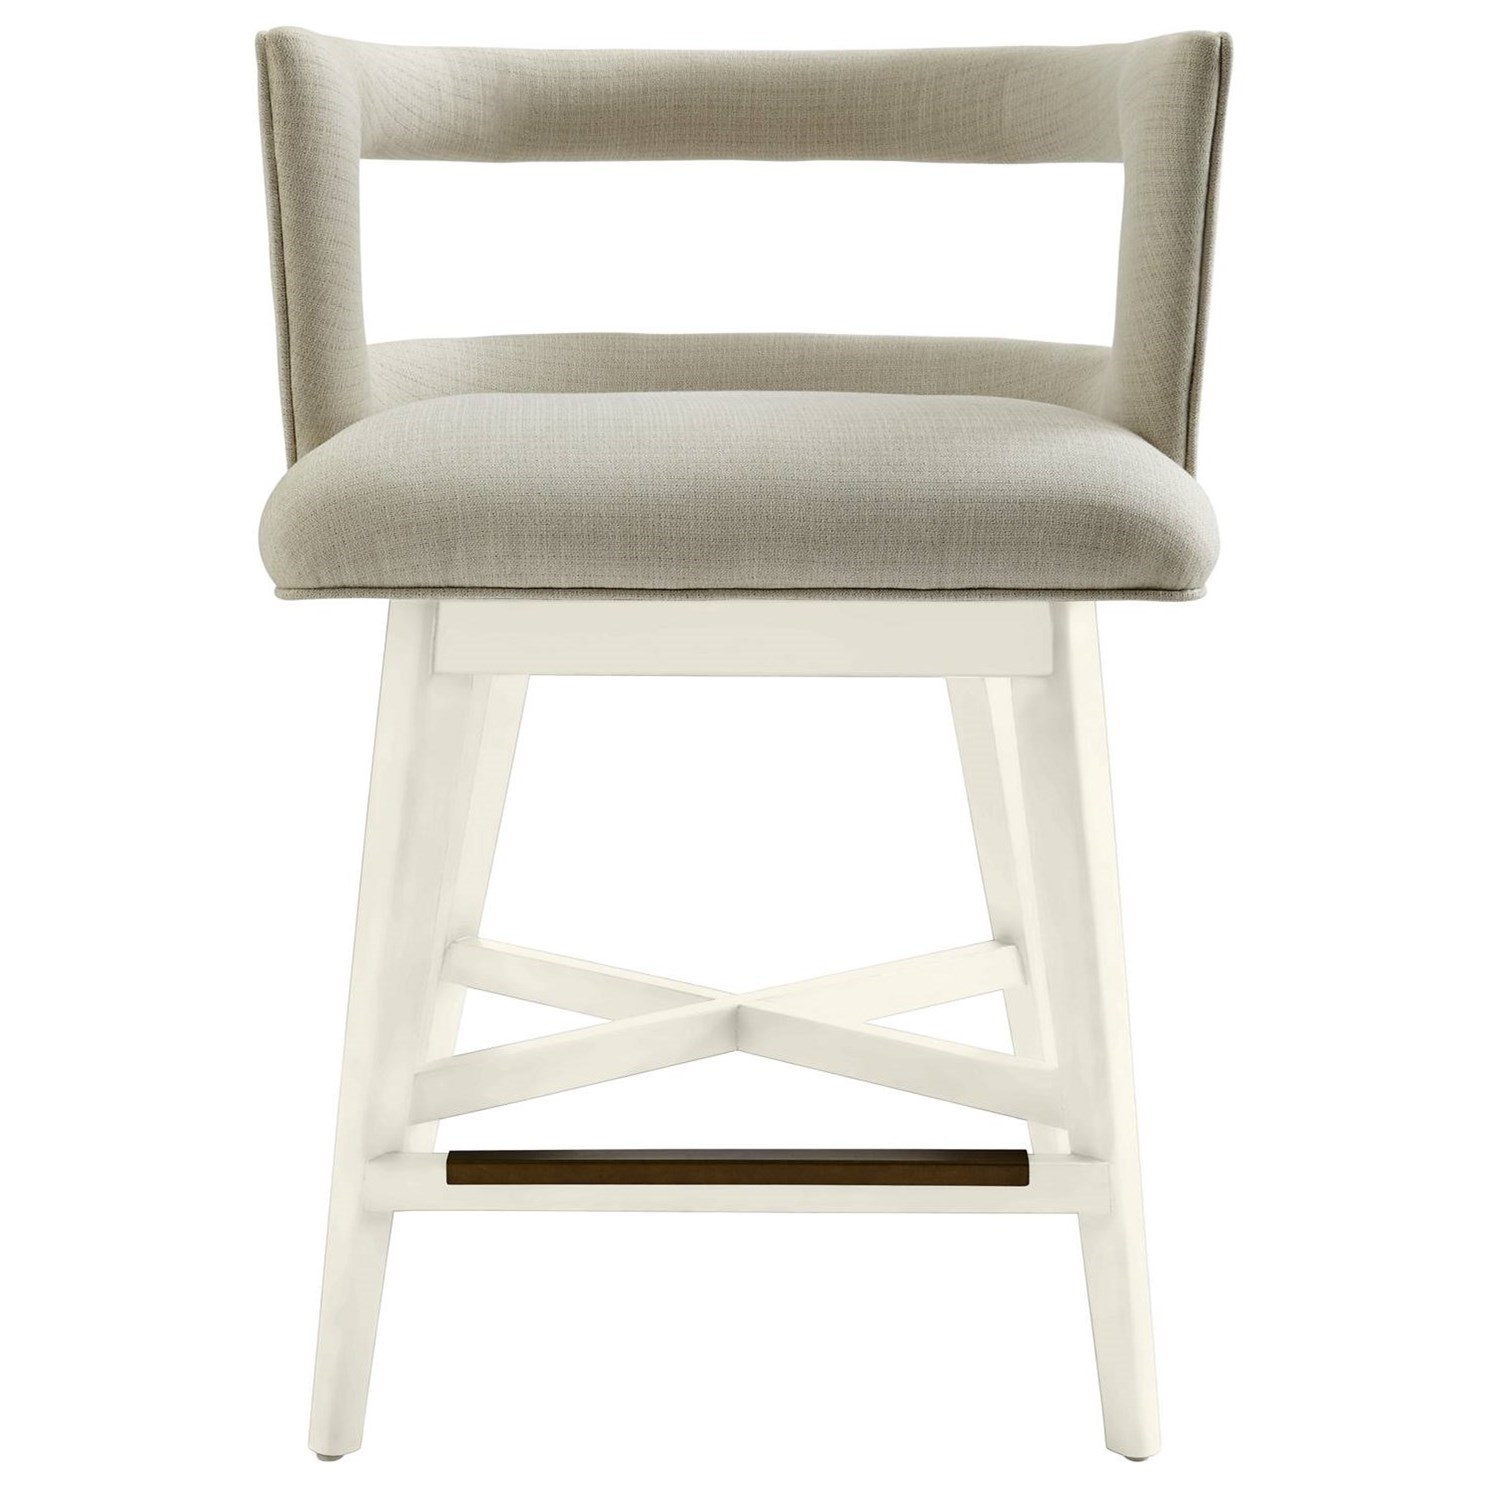 Stanley Furniture Coastal Living Oasis Crestwood Counter Stool - Item Number: 527-21-72